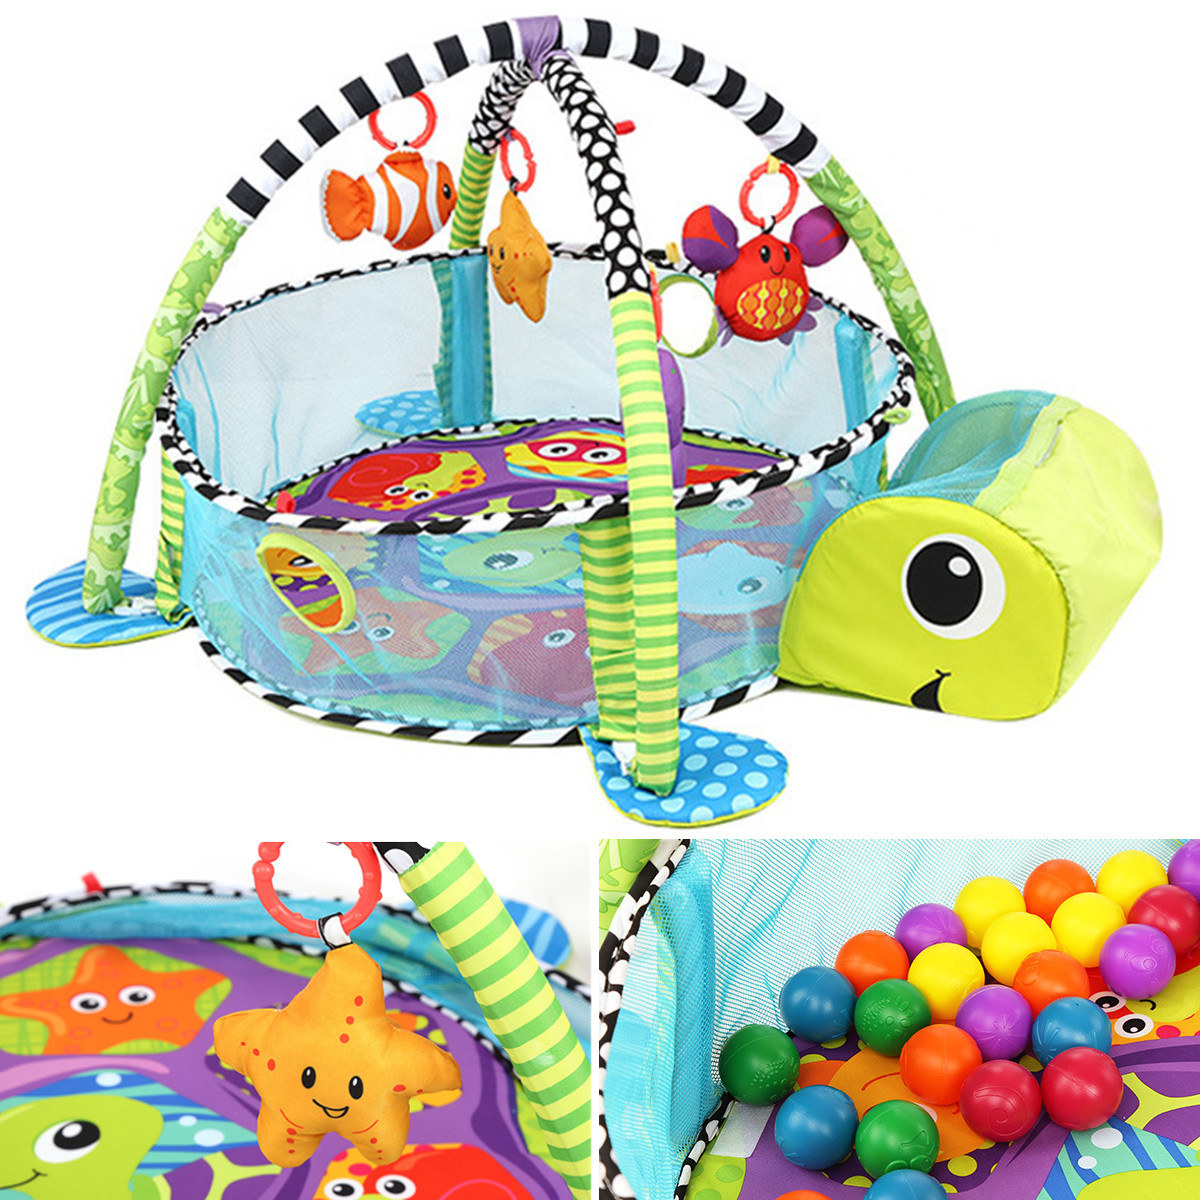 """This set includes 40 colorful balls that can be stored in the turtle's li'l noggin. Promising review: """"My daughter has been using this since she was a new born and she is now 10 months. This keeps her entertained and has helped her develop her hand eye coordination. It stayed packed away for a month or two when we moved and now that she is walking and crawling she loves it as a ball pit. She goes in and out and moves the balls around. This is a great toy that has kept her interest as she has grown."""" —KevinPrice: .32"""